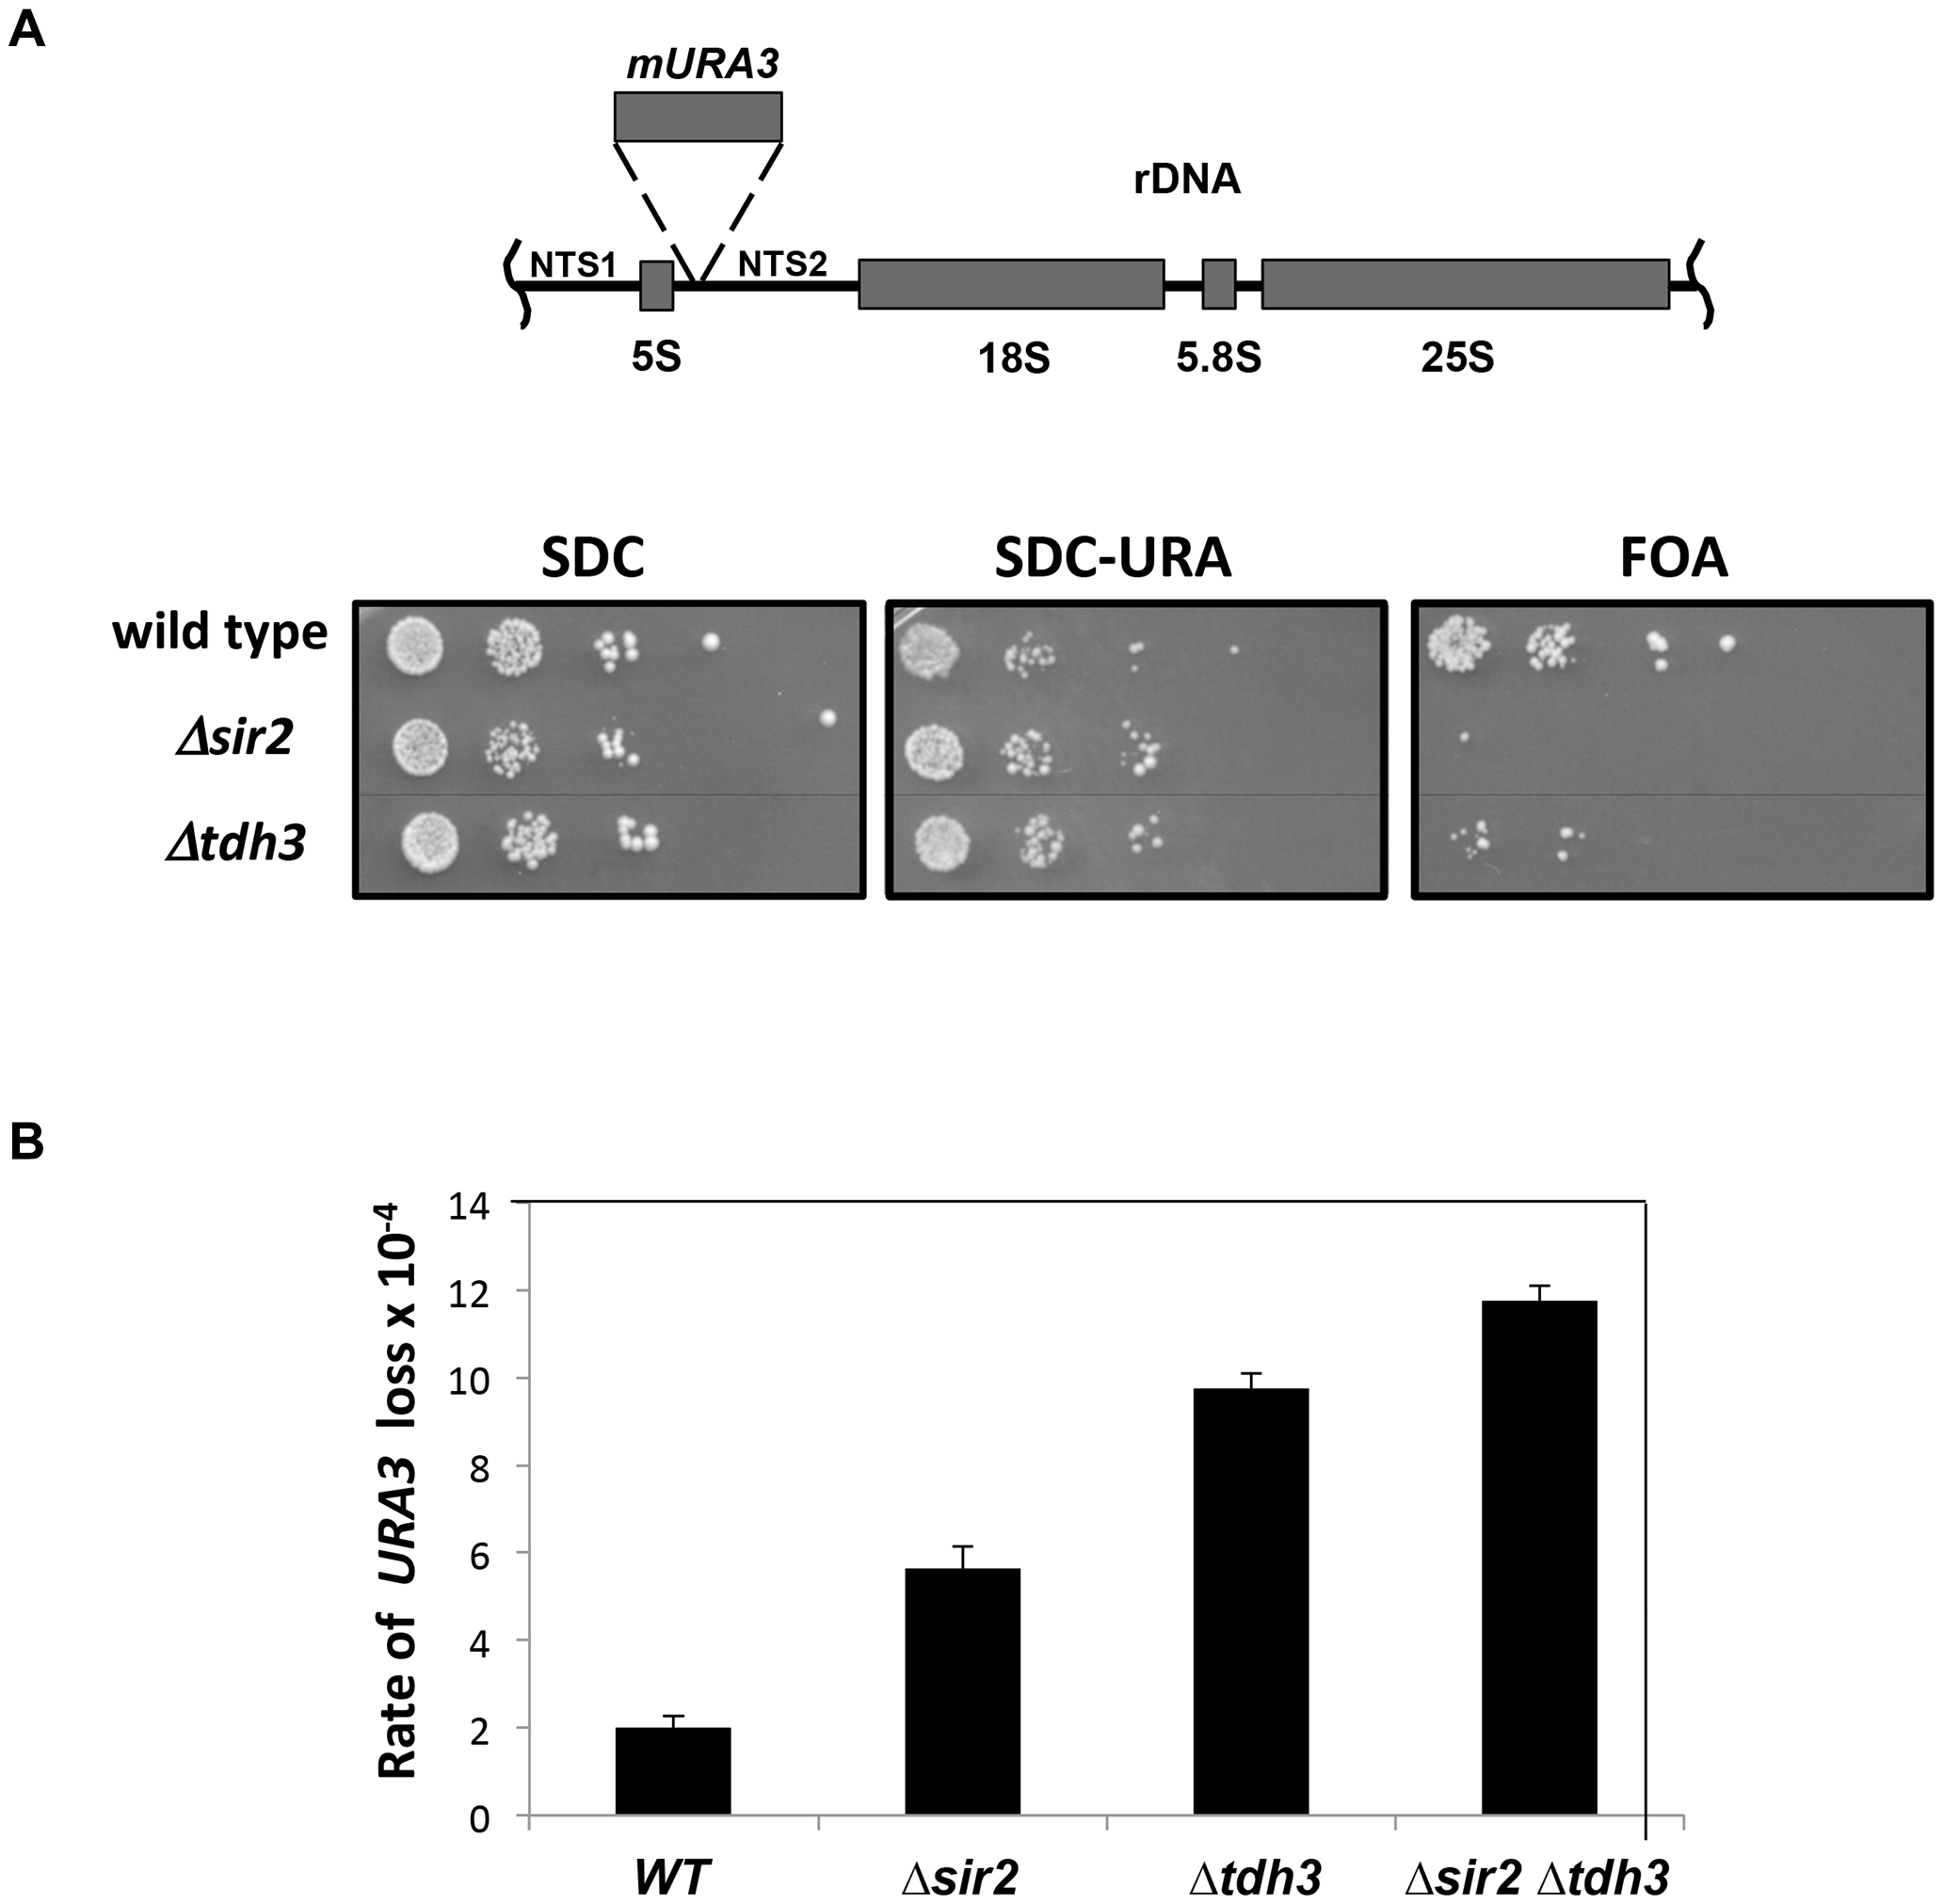 Tdh3 regulates silencing and recombination at the rDNA repeats.